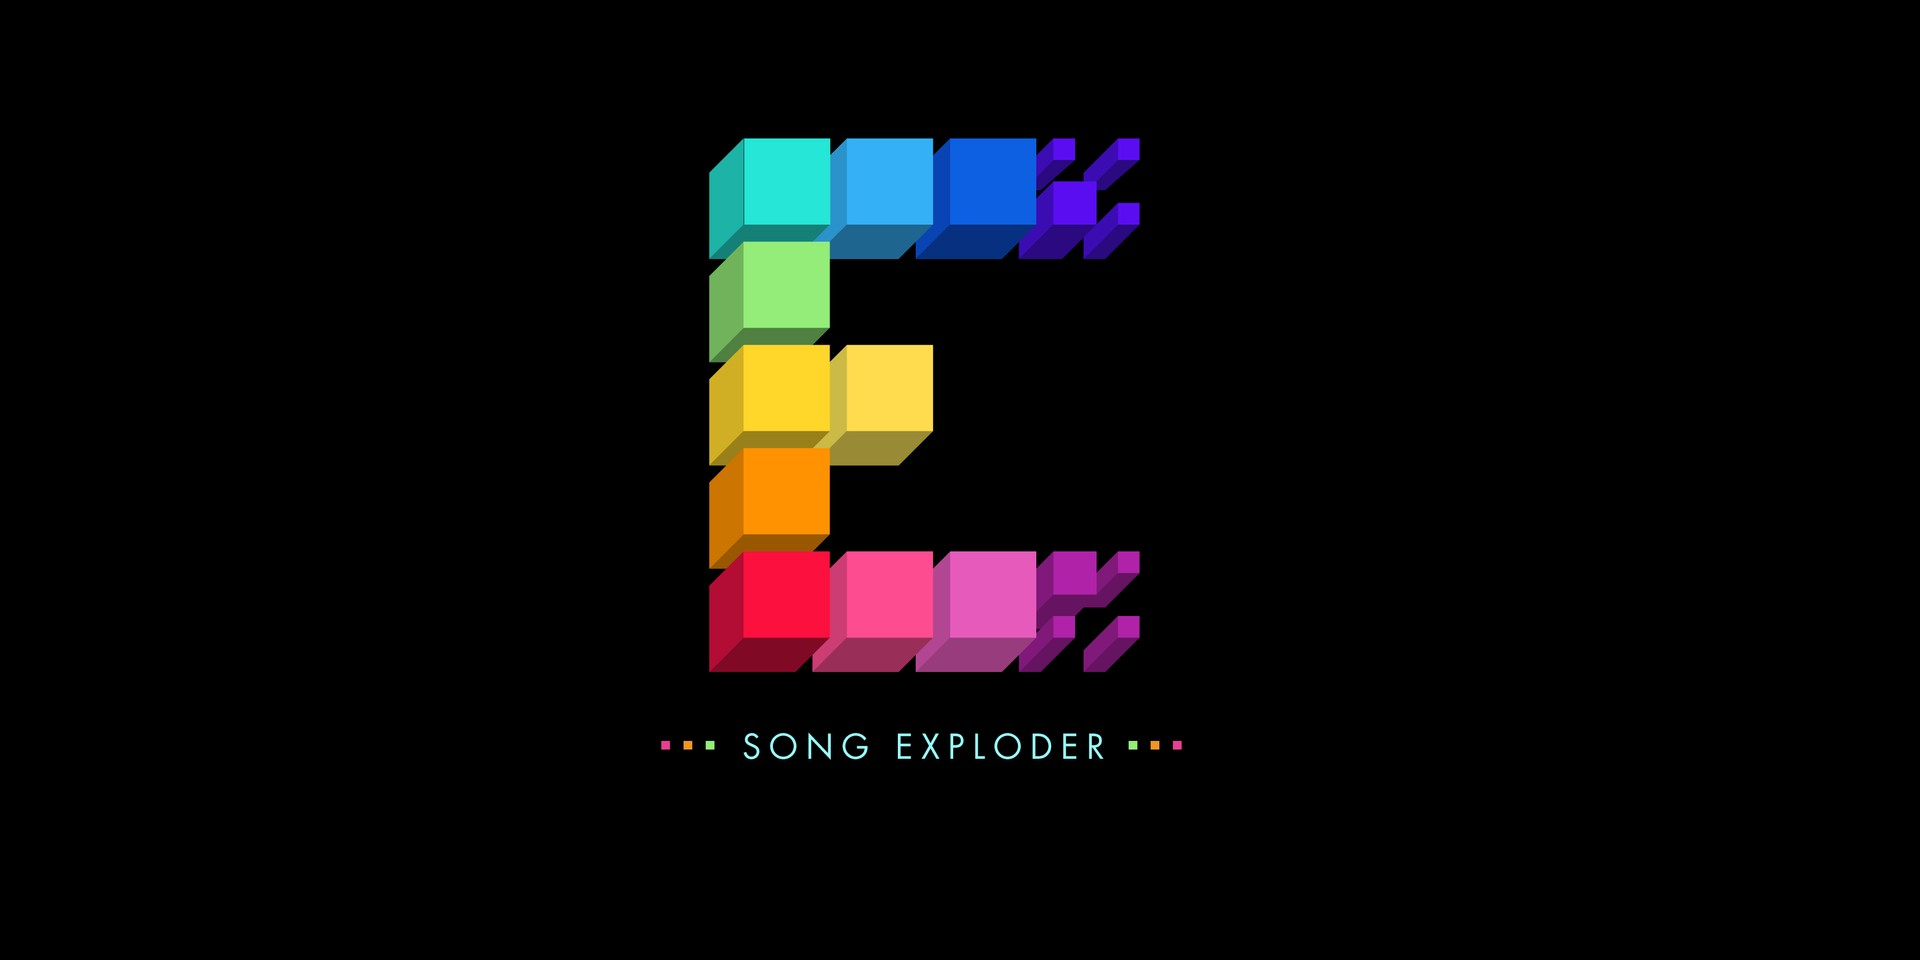 Music podcast Song Exploder is heading to Netflix